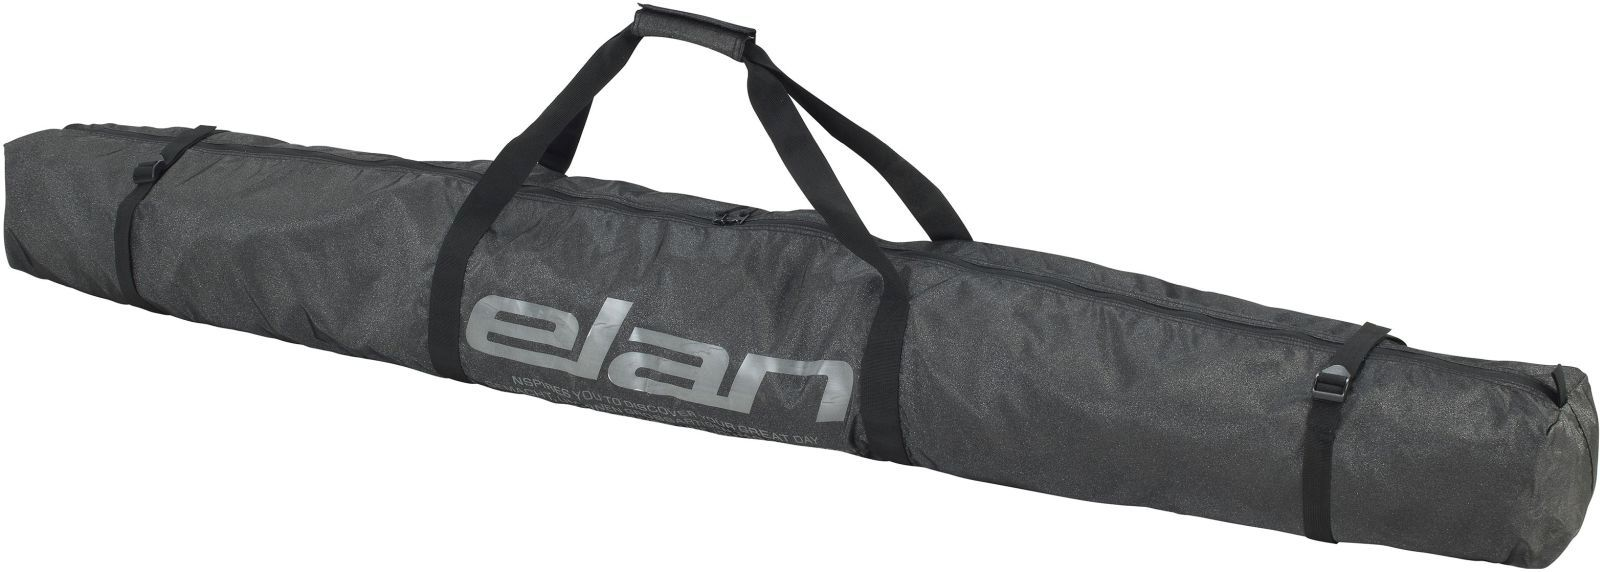 Elan 1 Pair Lady Bag uni